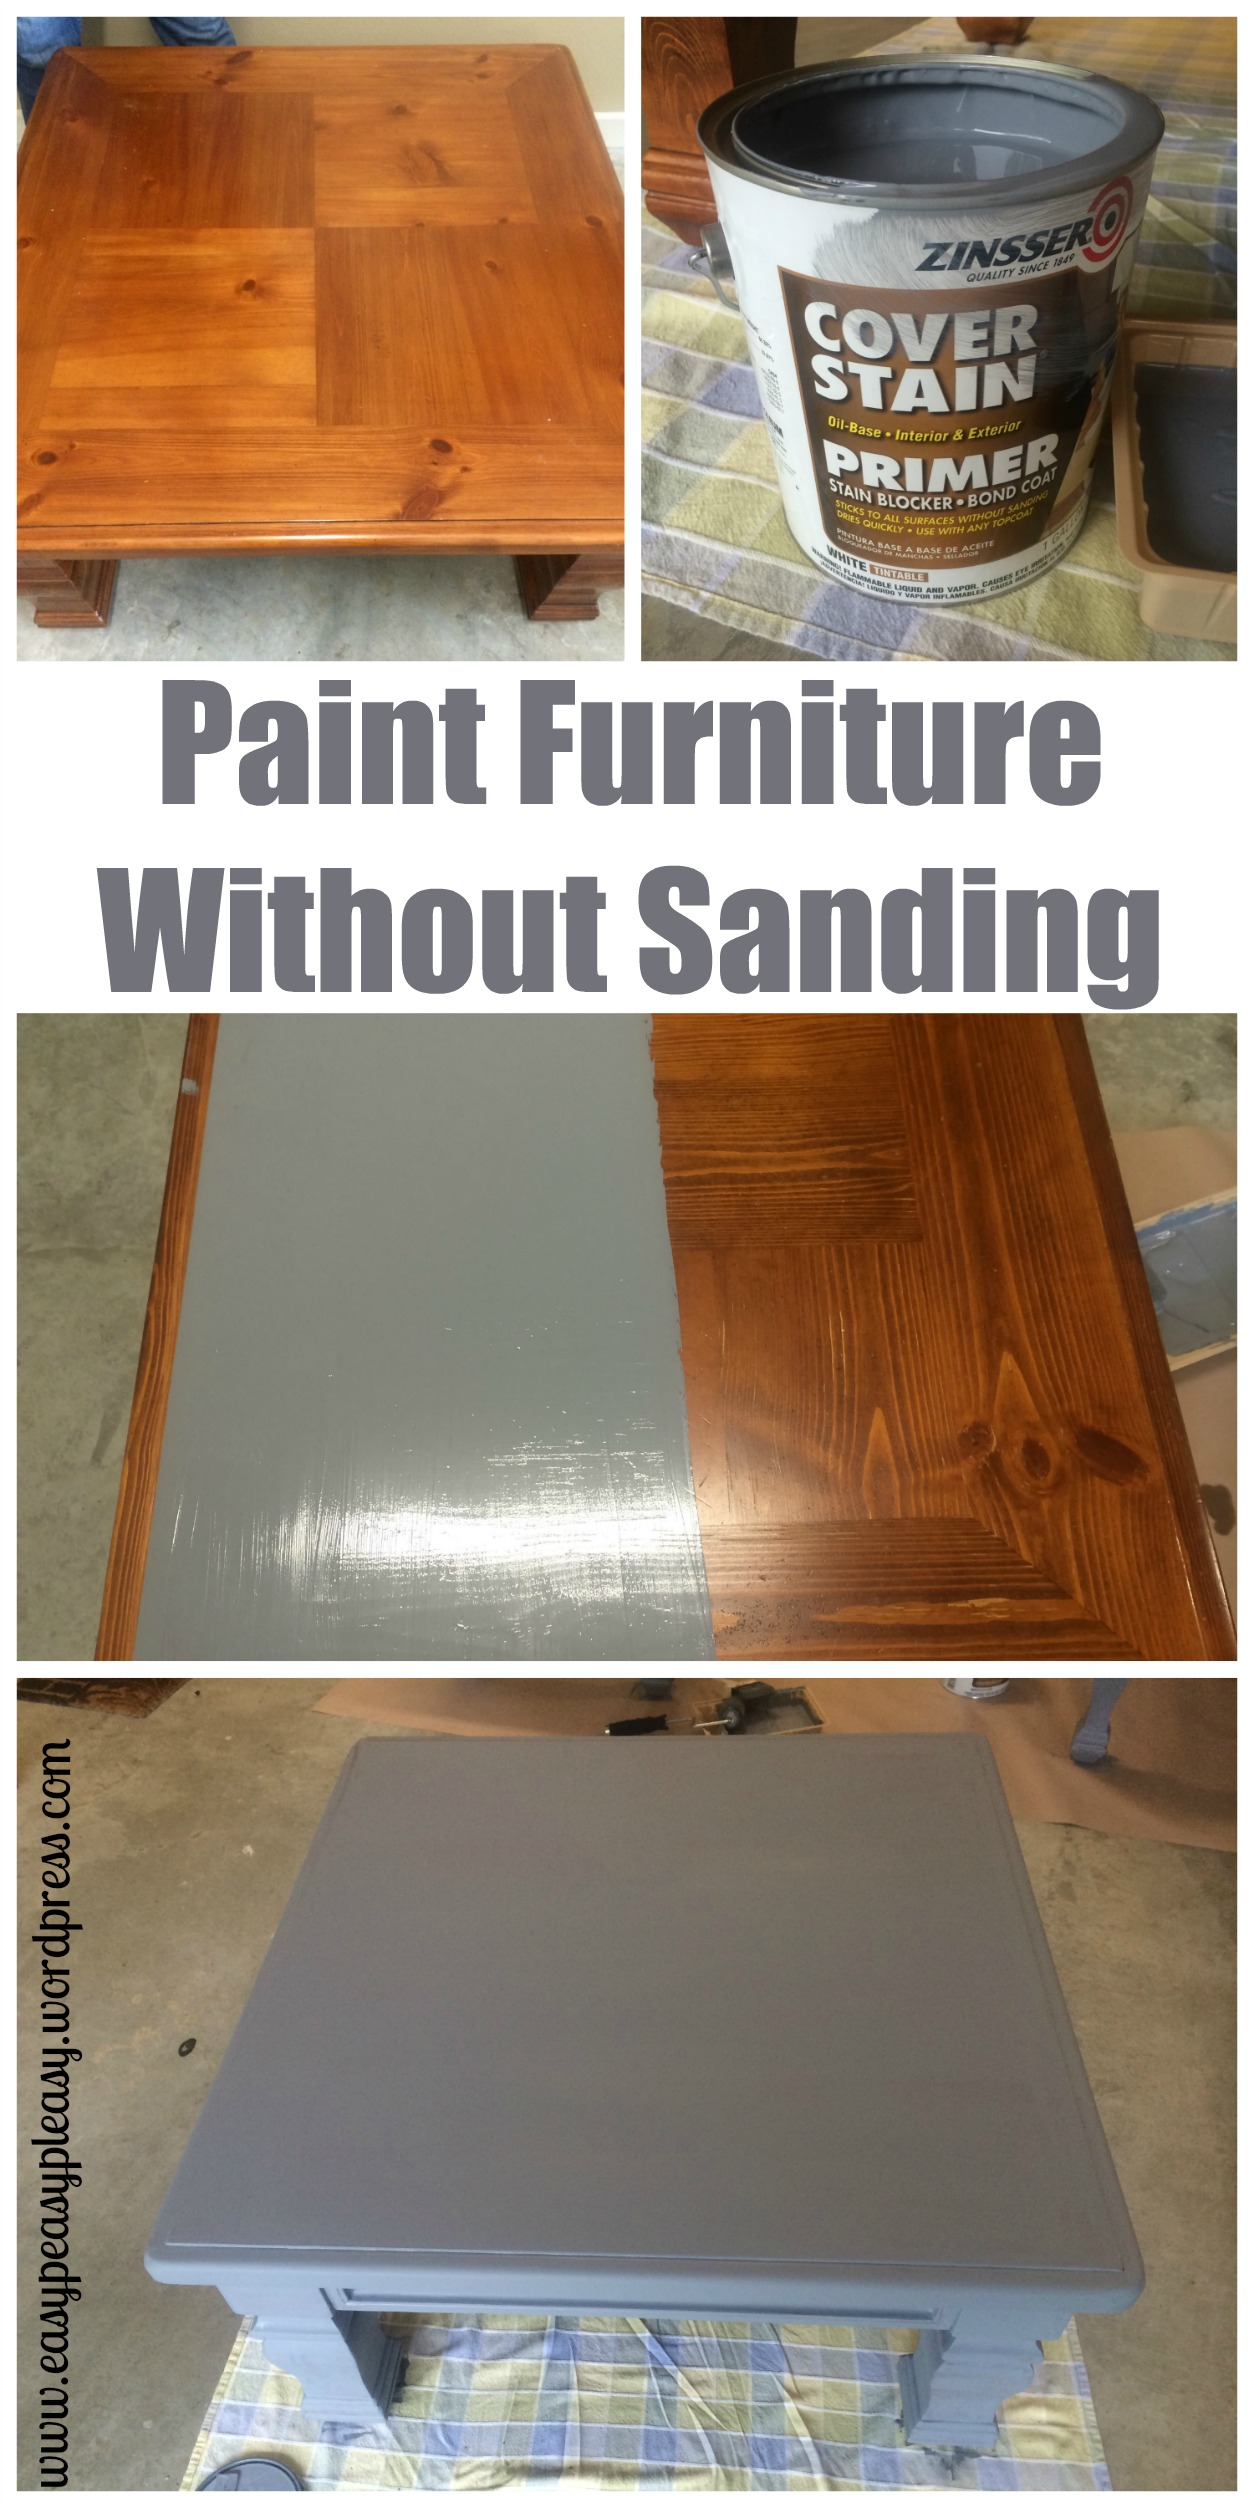 Diy Table To Ottoman And How To Paint Furniture Without Sanding Easy Peasy Pleasy